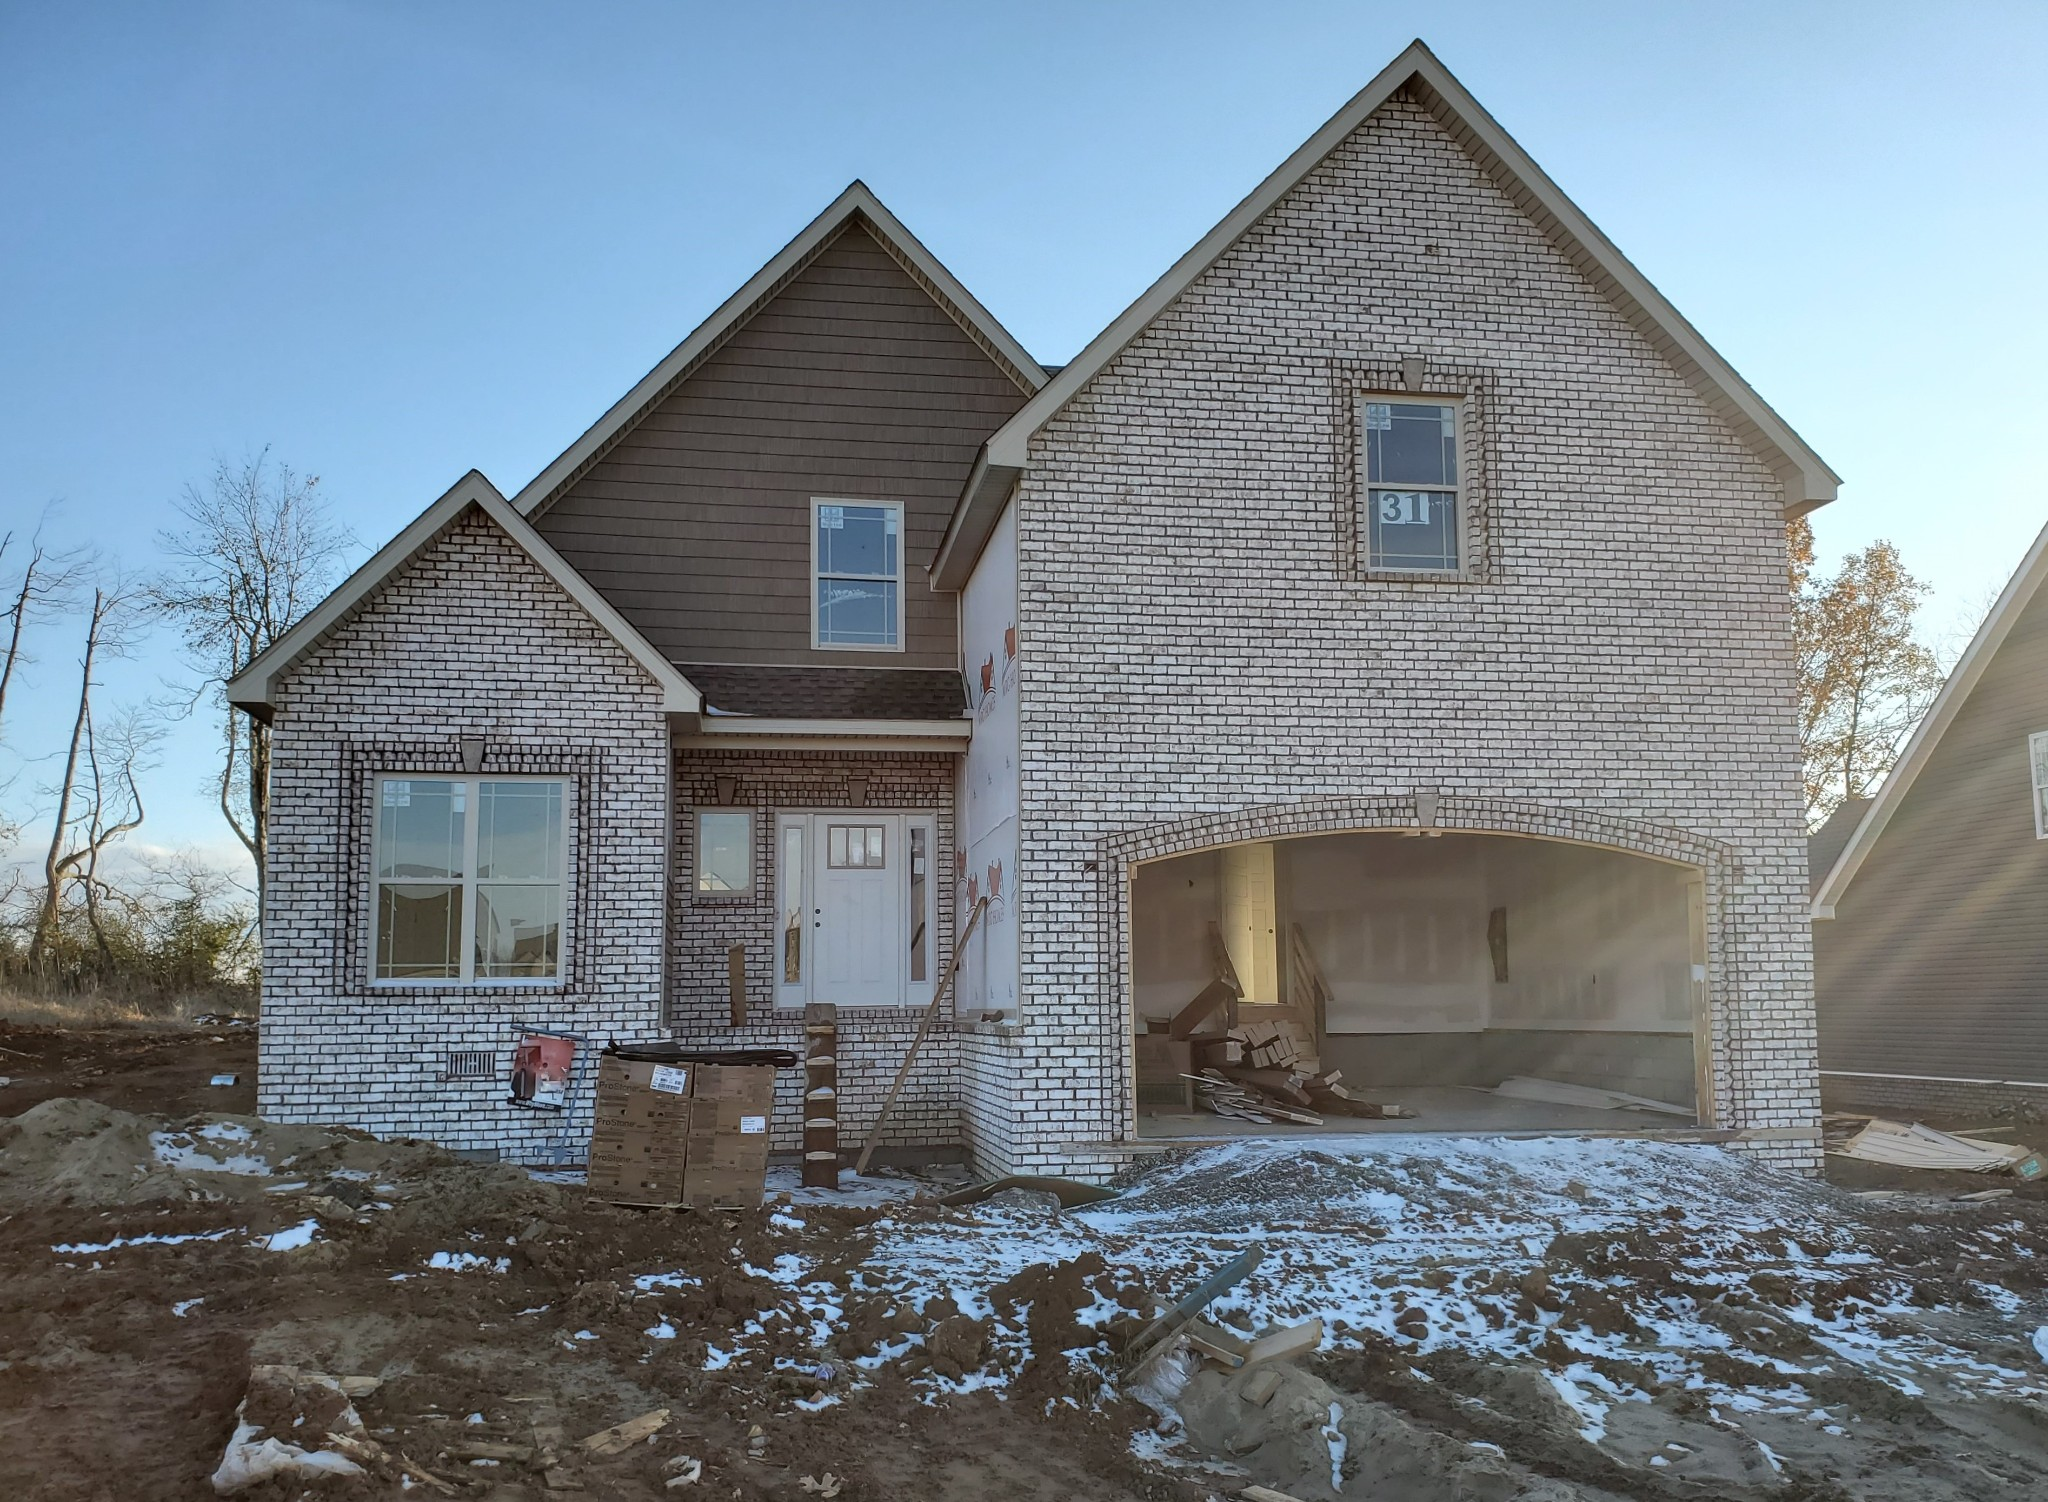 31 Reserve at Hickory Wild, Clarksville, TN 37043 - Clarksville, TN real estate listing